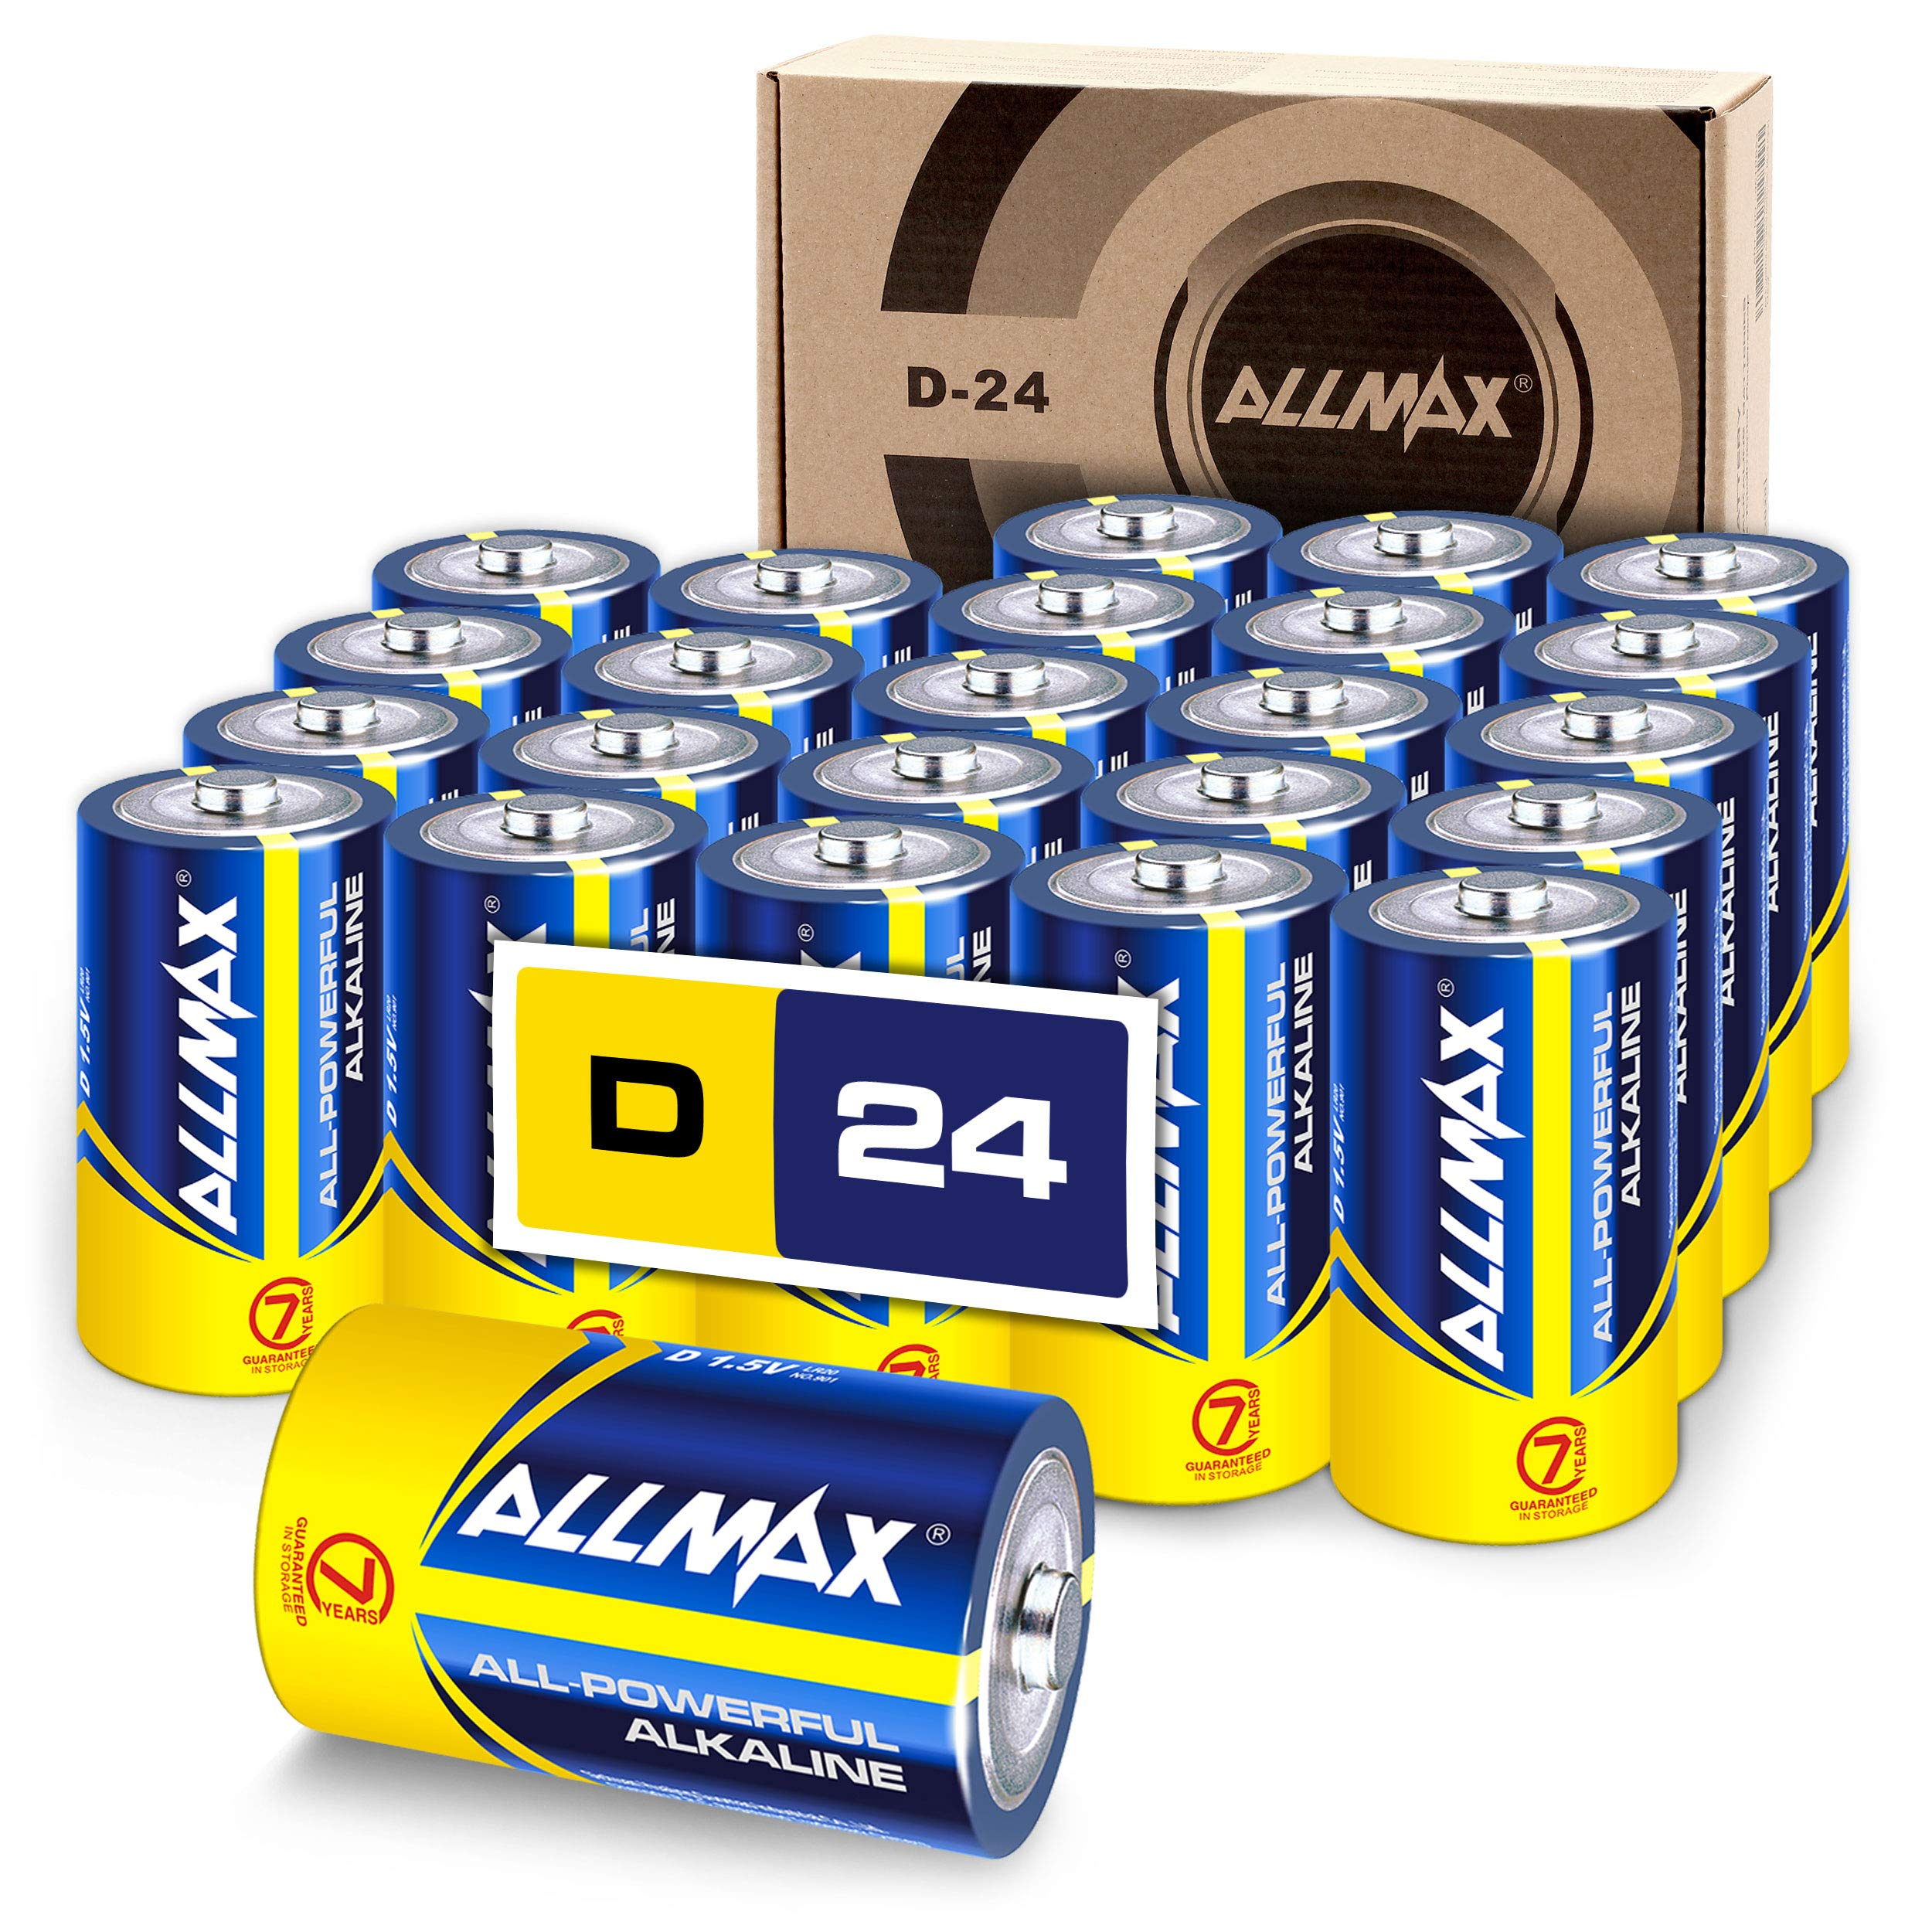 ALLMAX All-Powerful Alkaline Batteries - D (24-Pack) - Premium Grade, Ultra Long-Lasting and Leak Proof with EnergyCircle Technology (1.5 Volt)